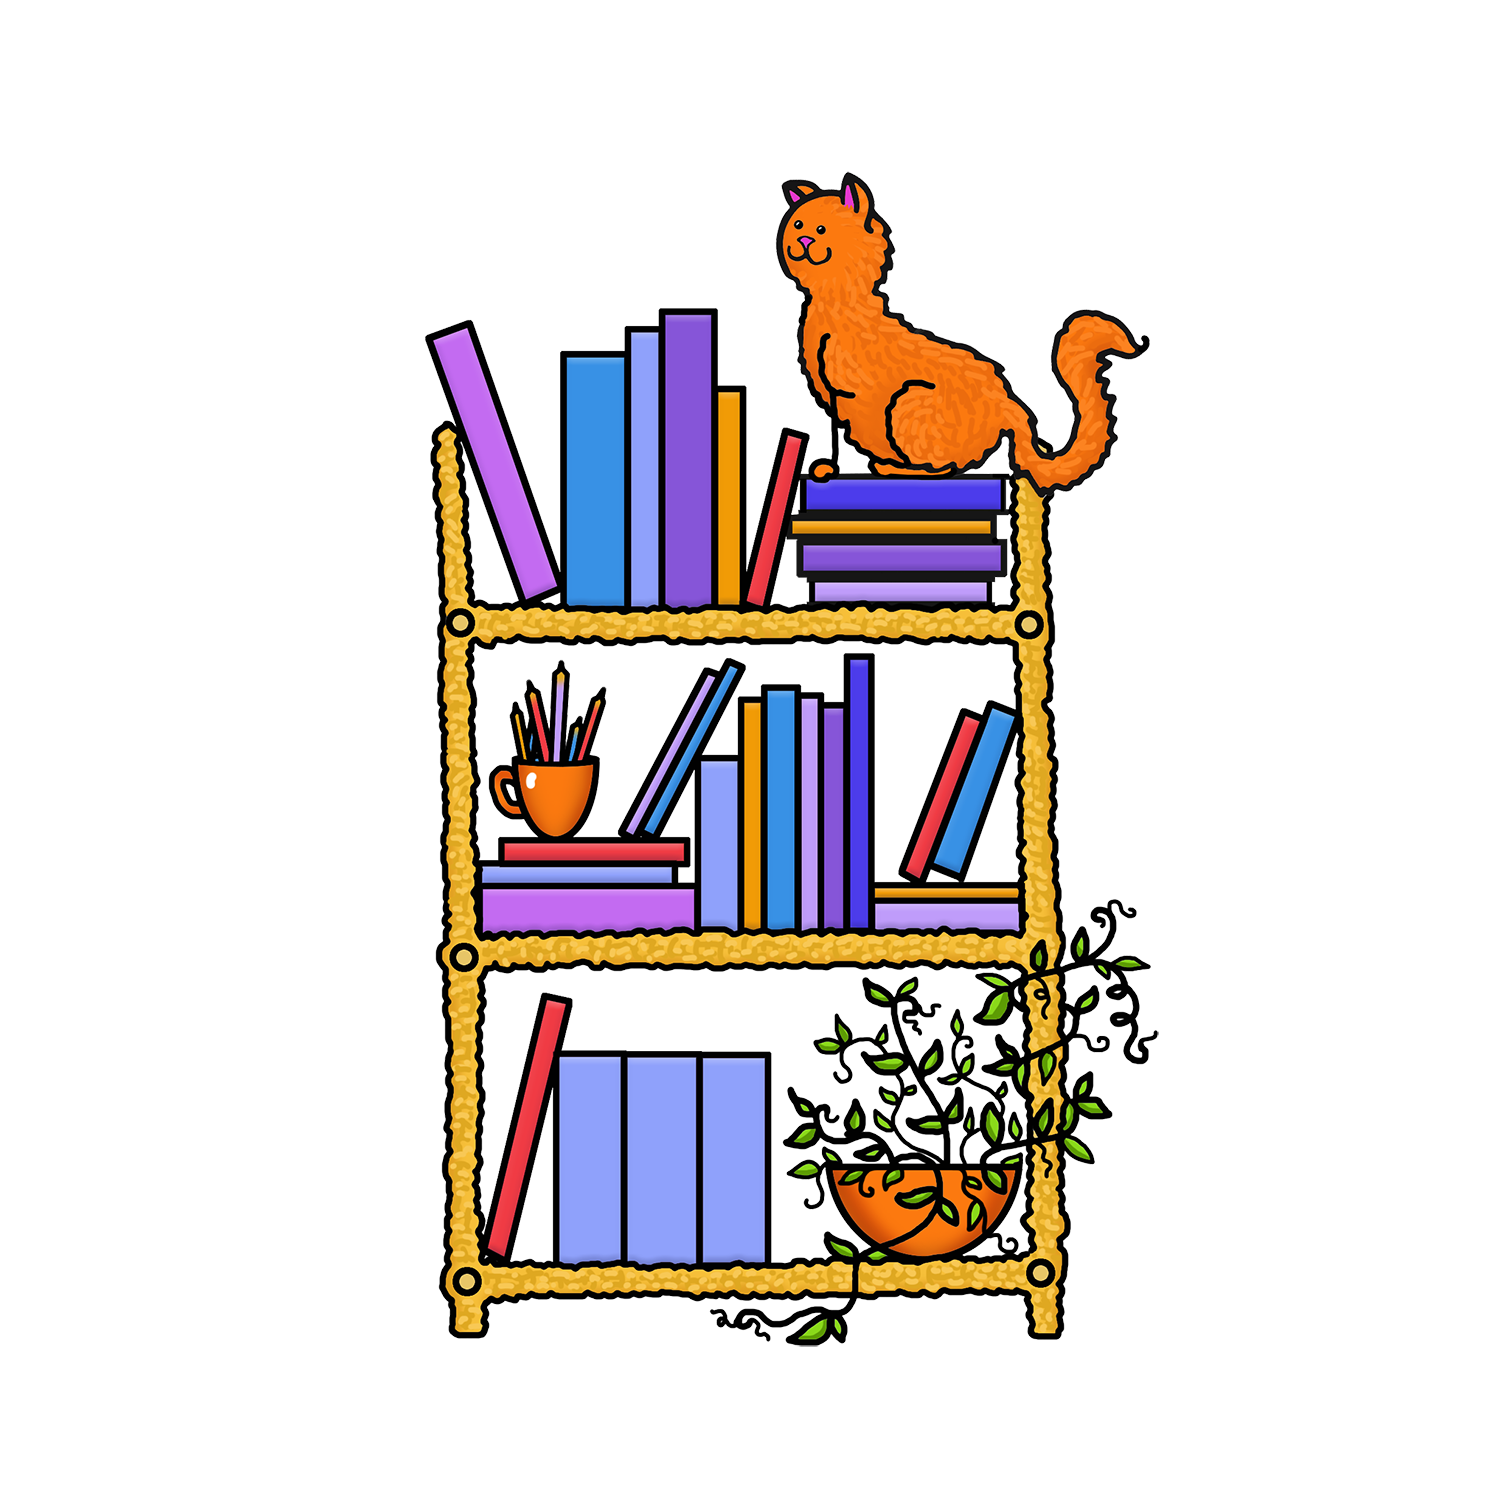 Book shelf png zf. Number 1 clipart color